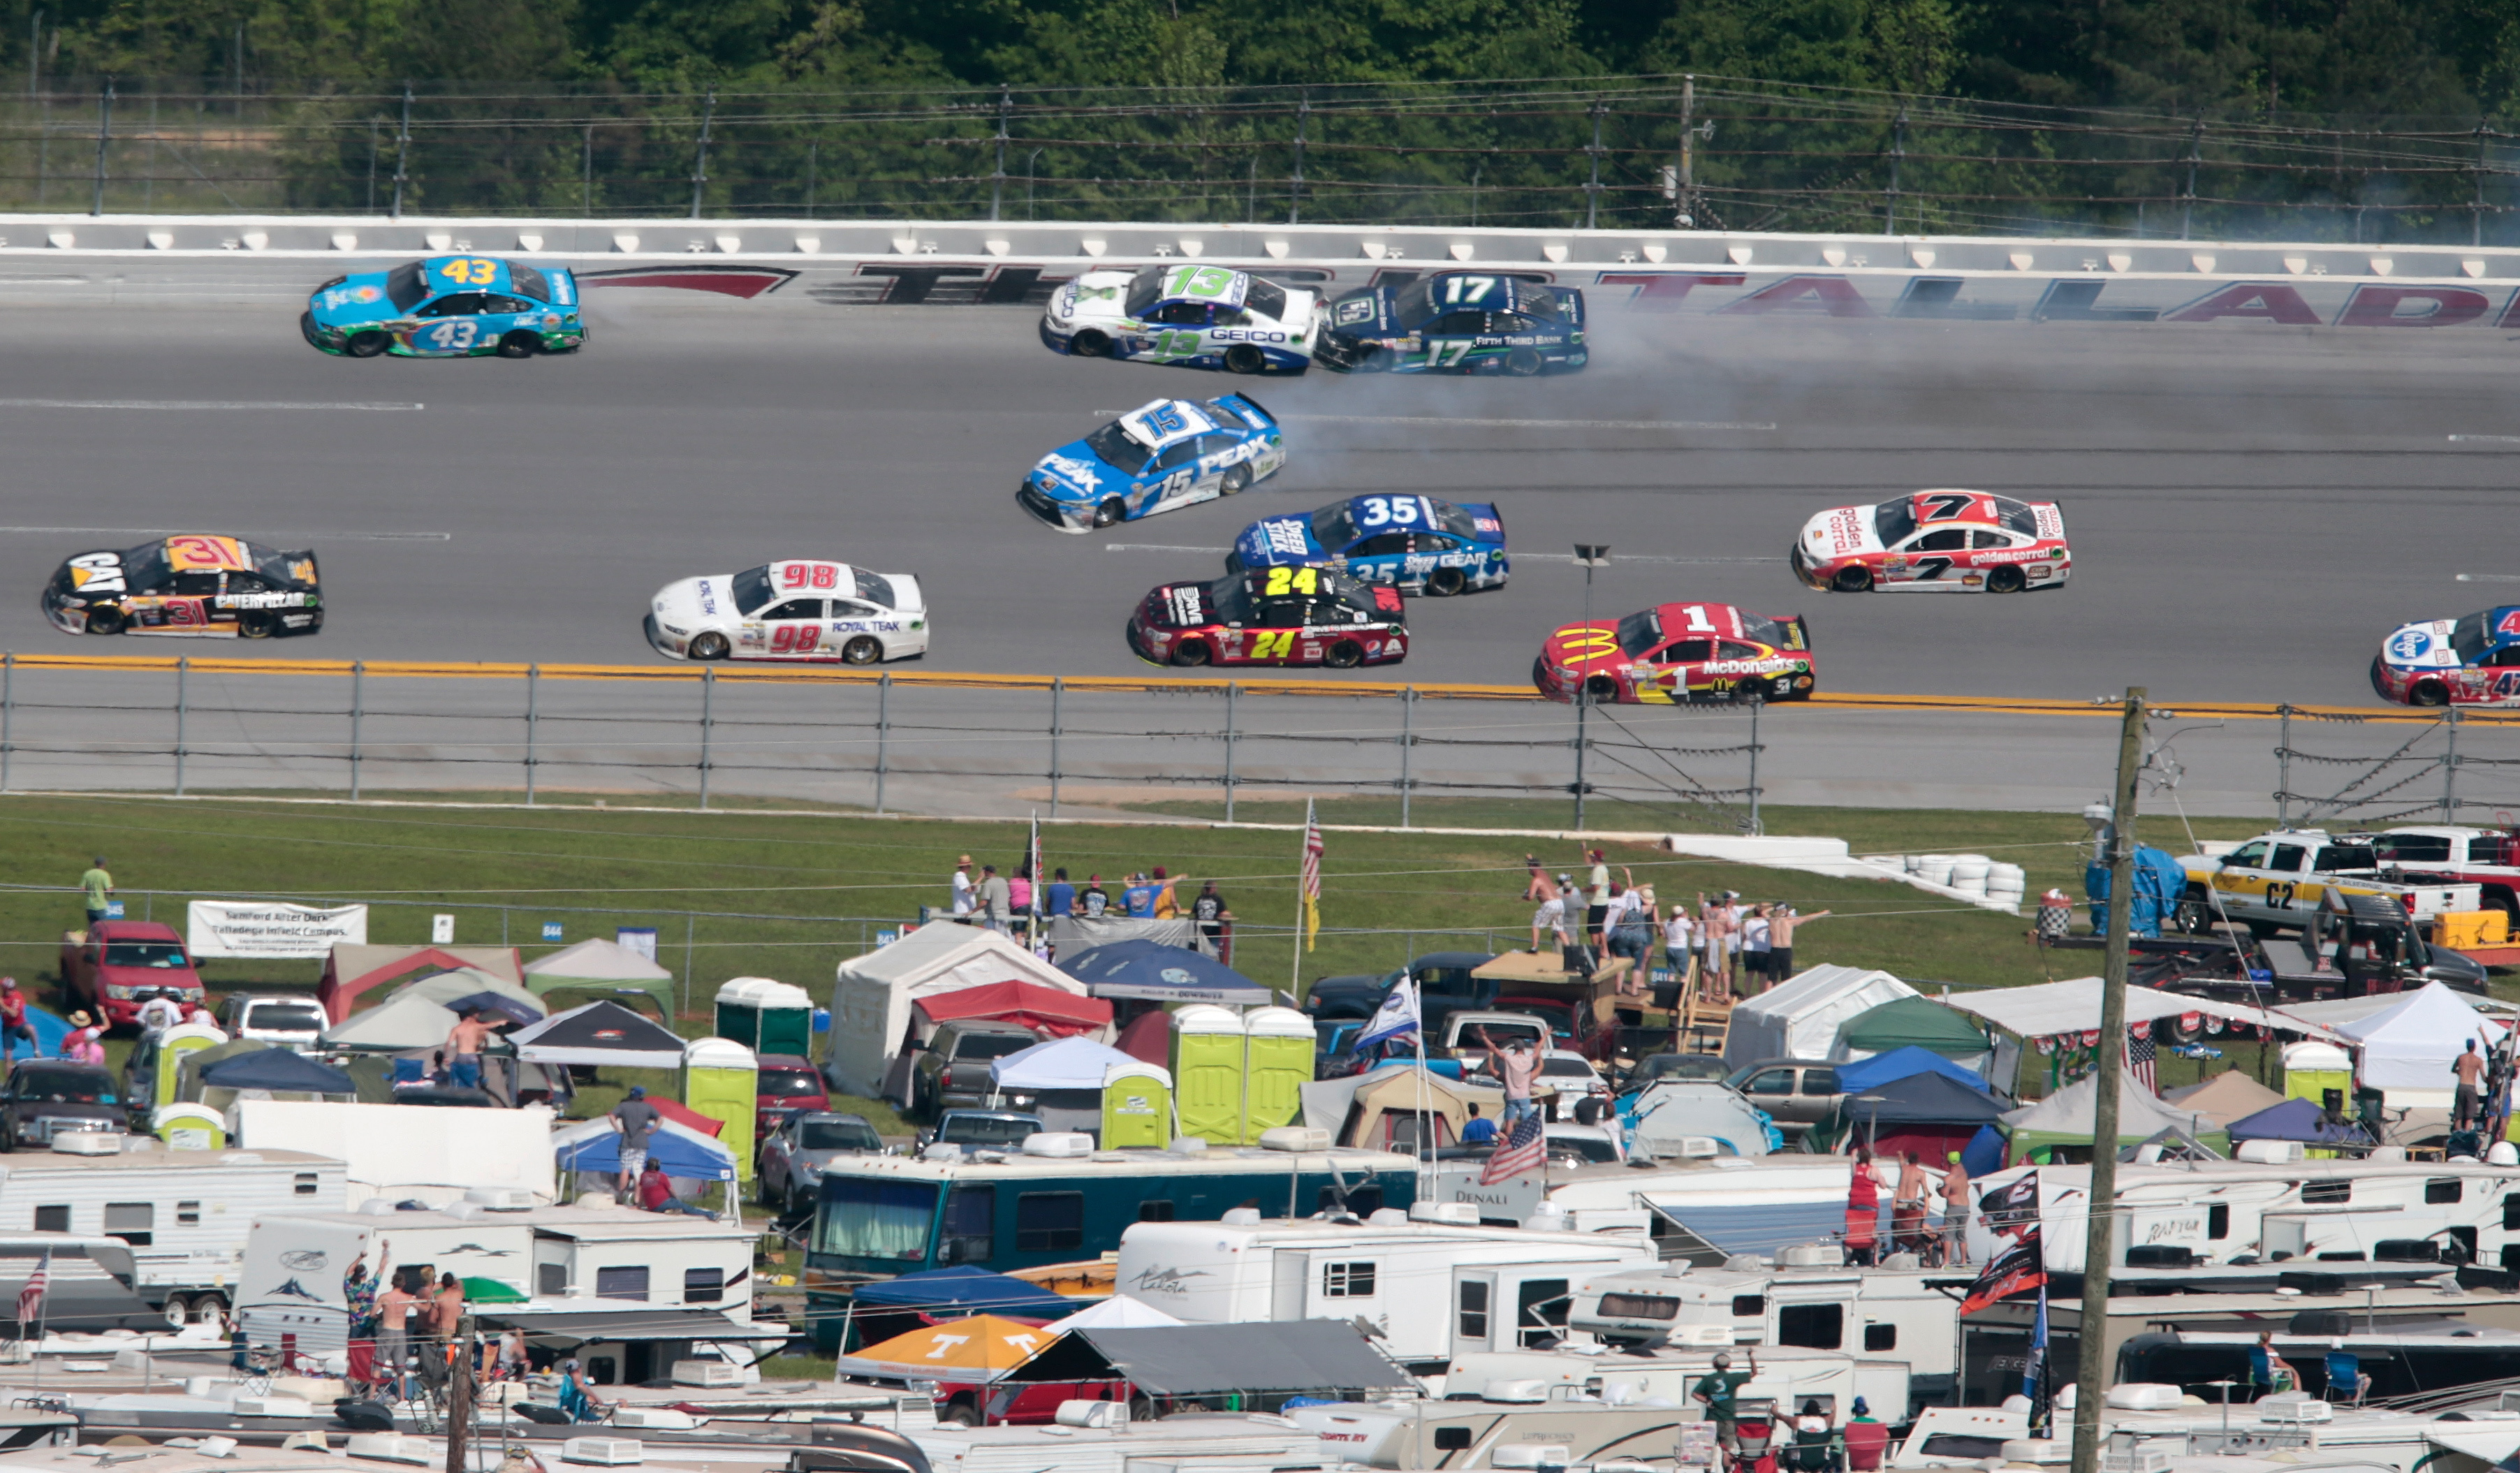 Casey Mears (13) and Ricky Stenhouse Jr. (17) crash on the final lap while Clint Bowyer (15) spins past them during the Talladega 500 NASCAR Sprint Cup Series auto race at Talladega Superspeedway, Sunday, May 3, 2015, in Talladega, Ala. (AP Photo/Butch Di